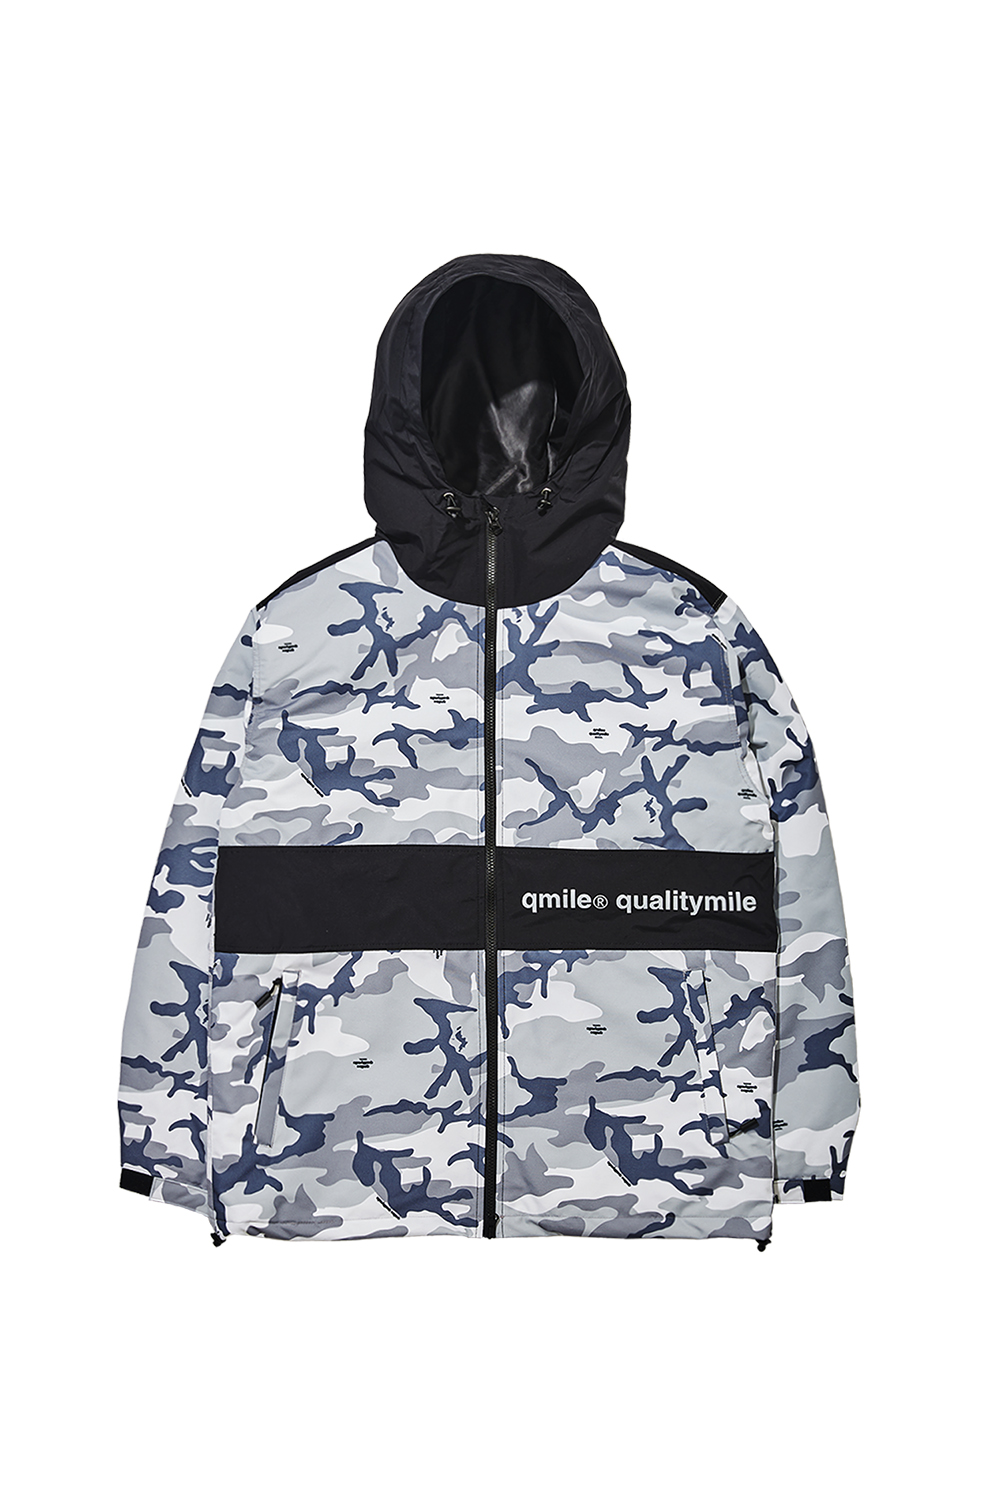 HARD TRAINING JACKET | GREY CAMOUFLAGE